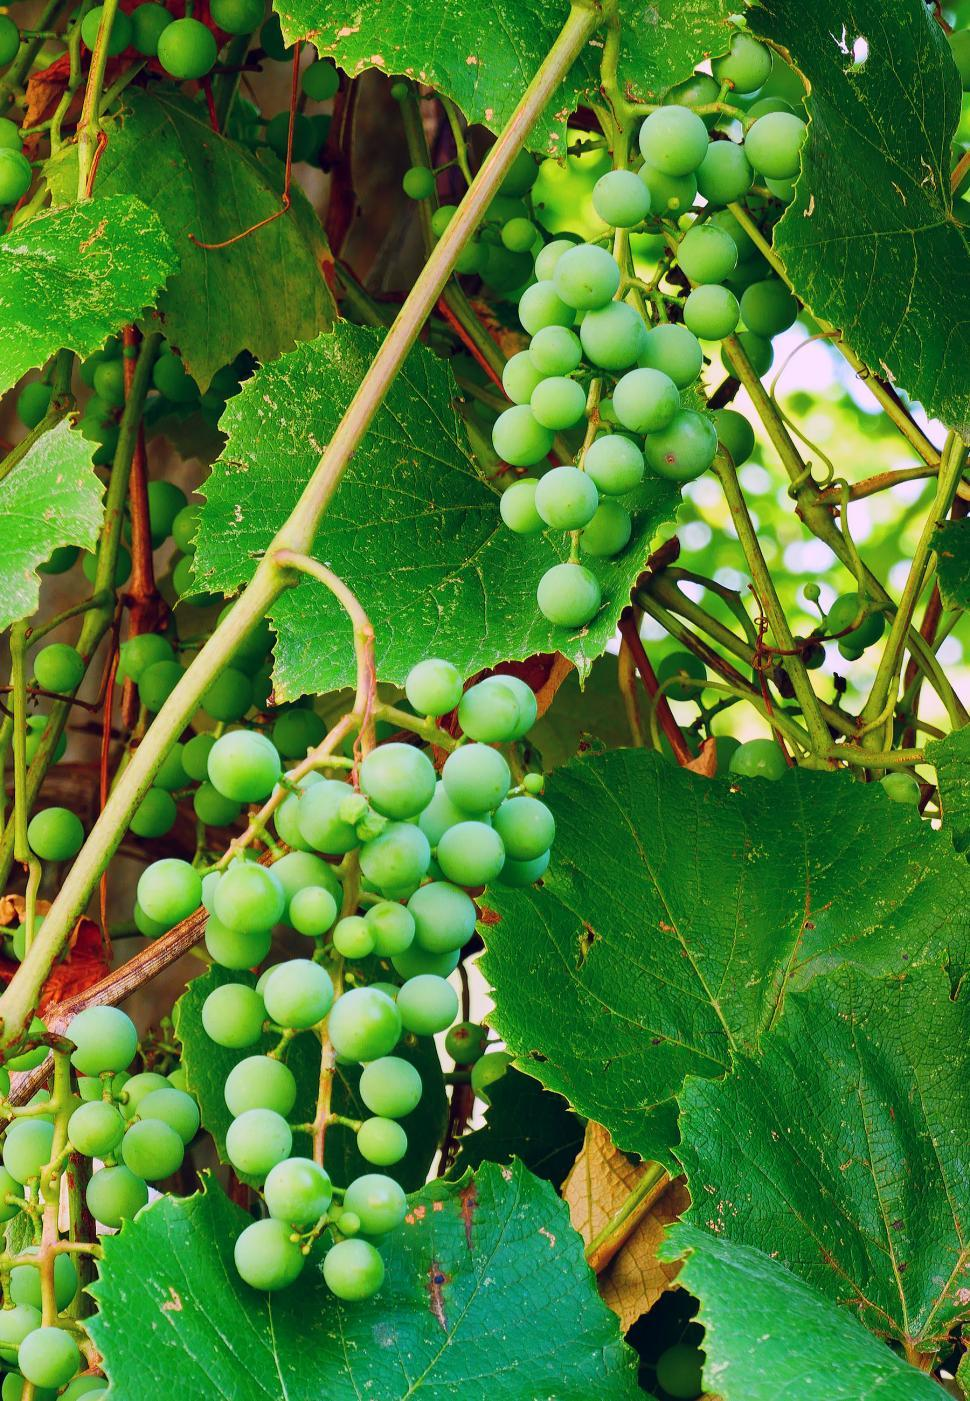 Download Free Stock HD Photo of Two Bunches of Green Young Concord Grapes Online